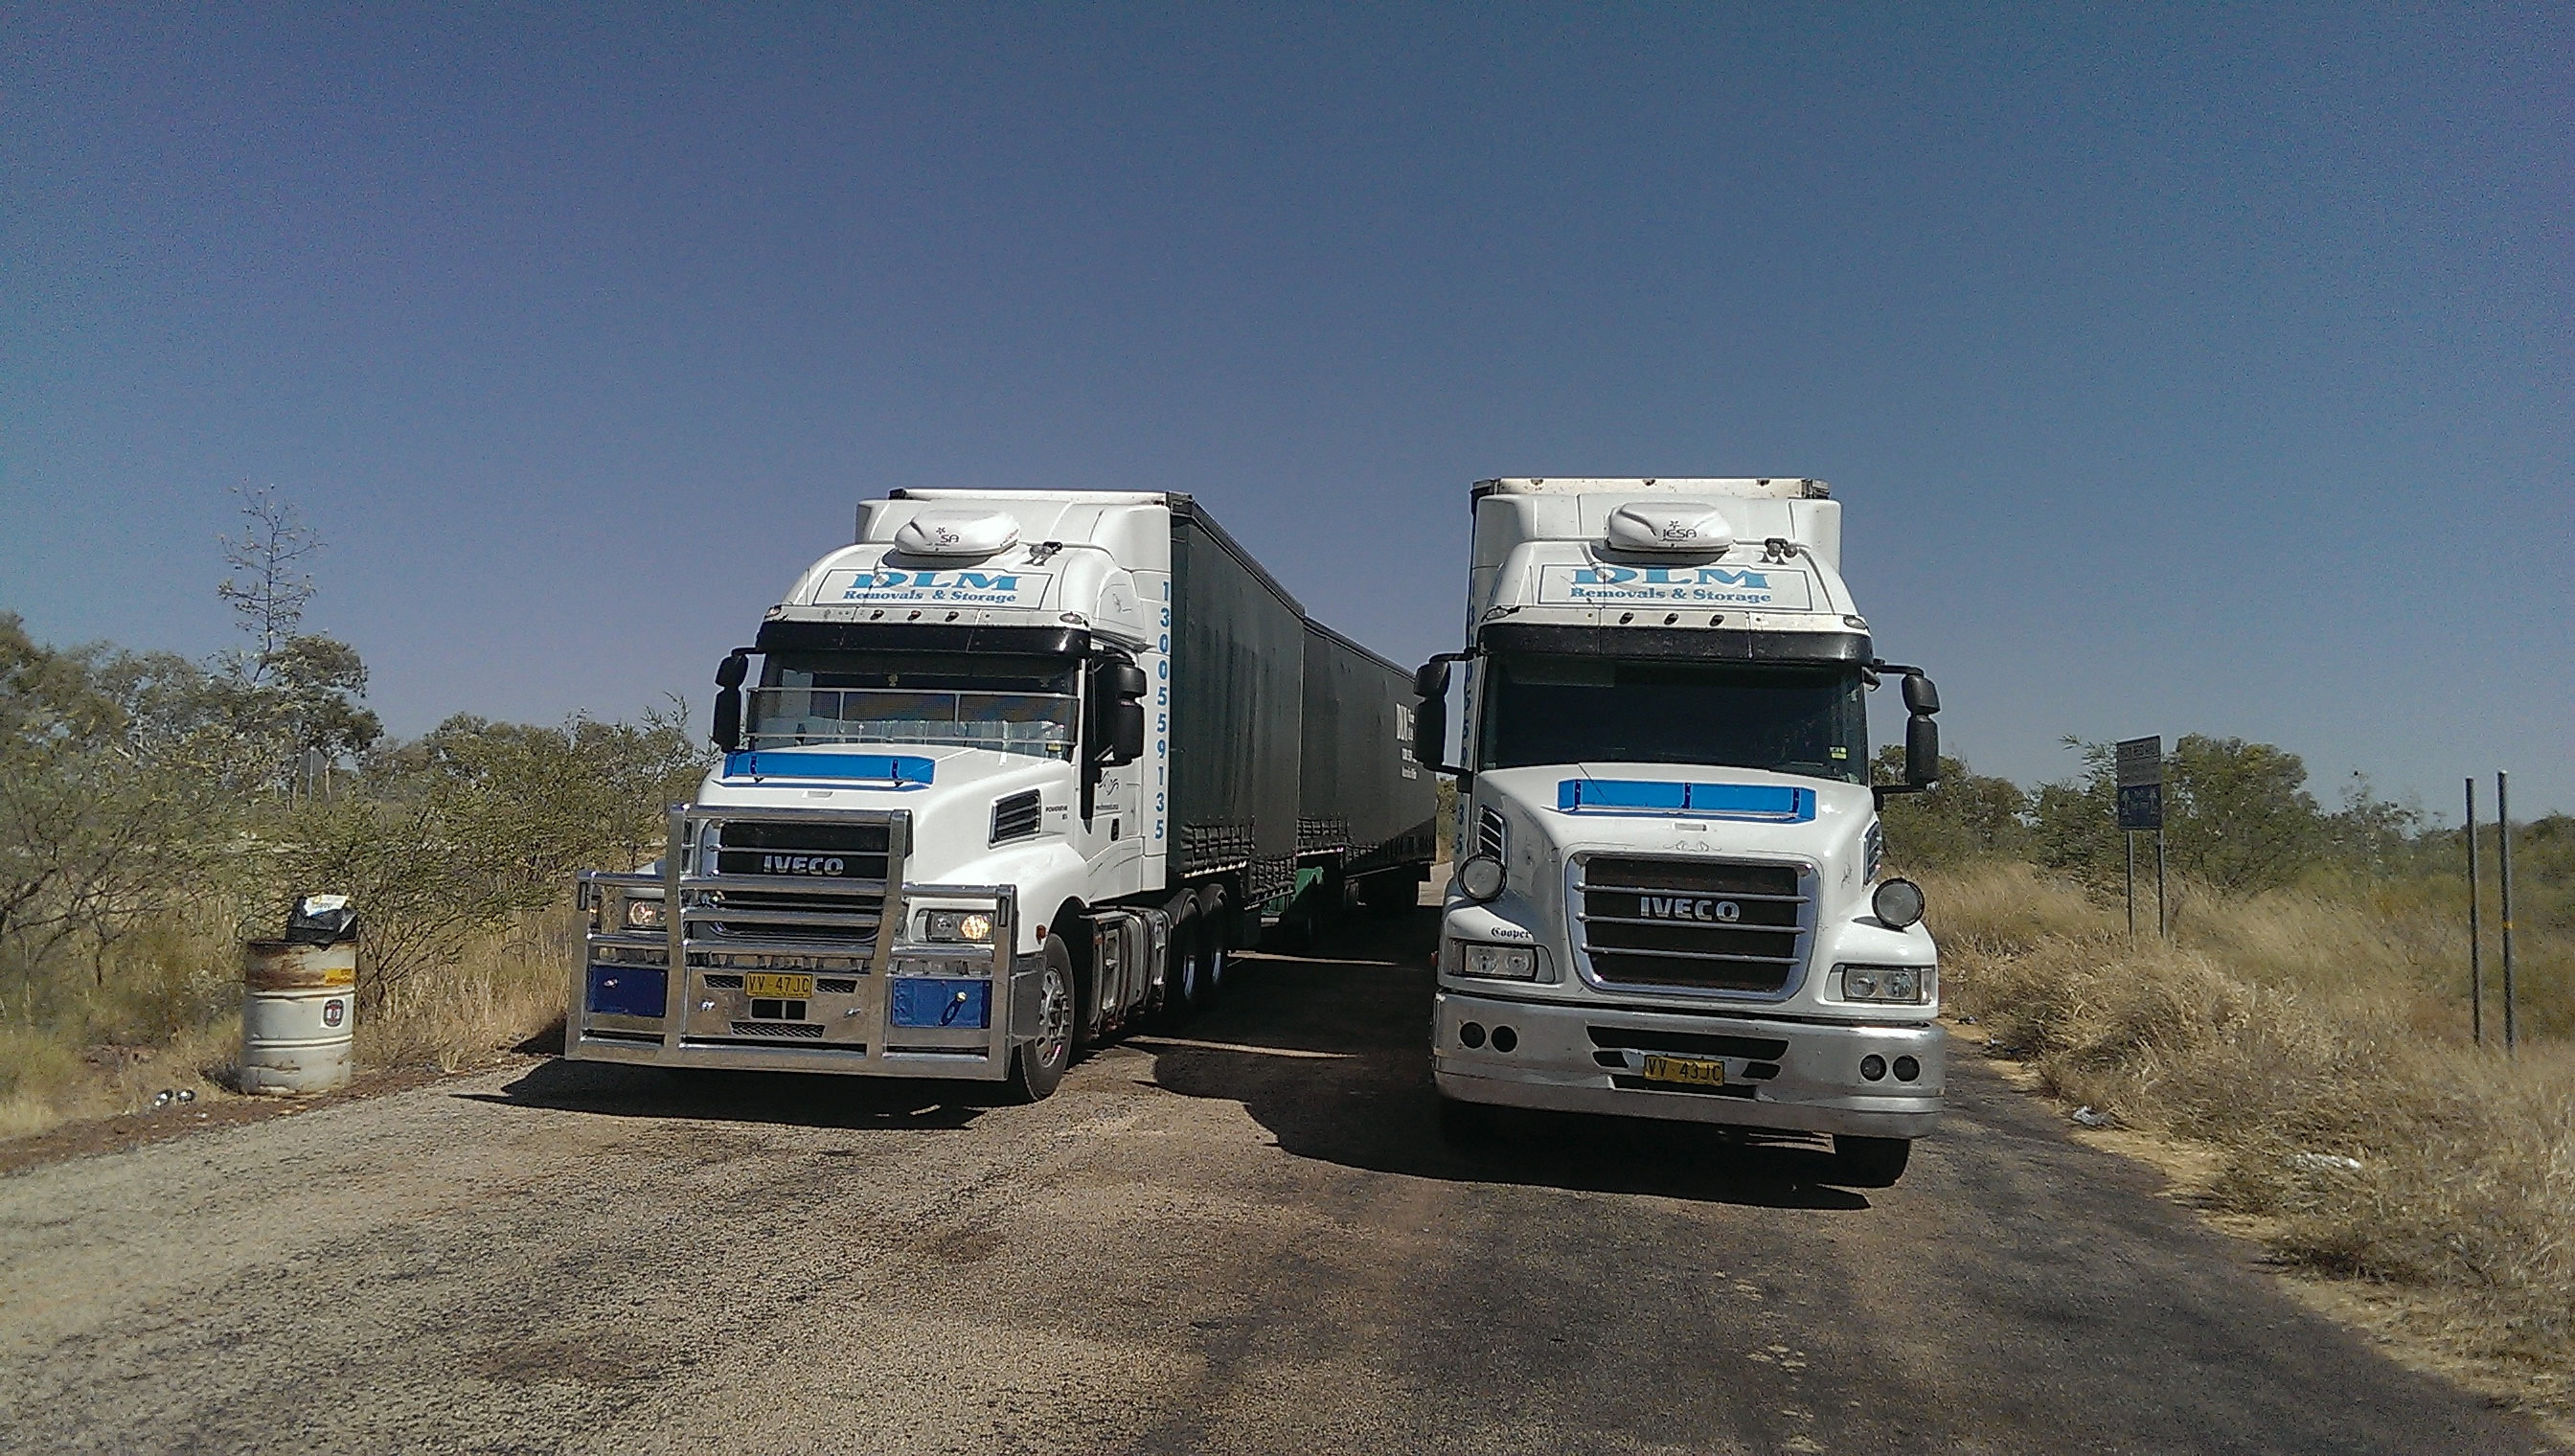 DLM Removals B-Double trucks